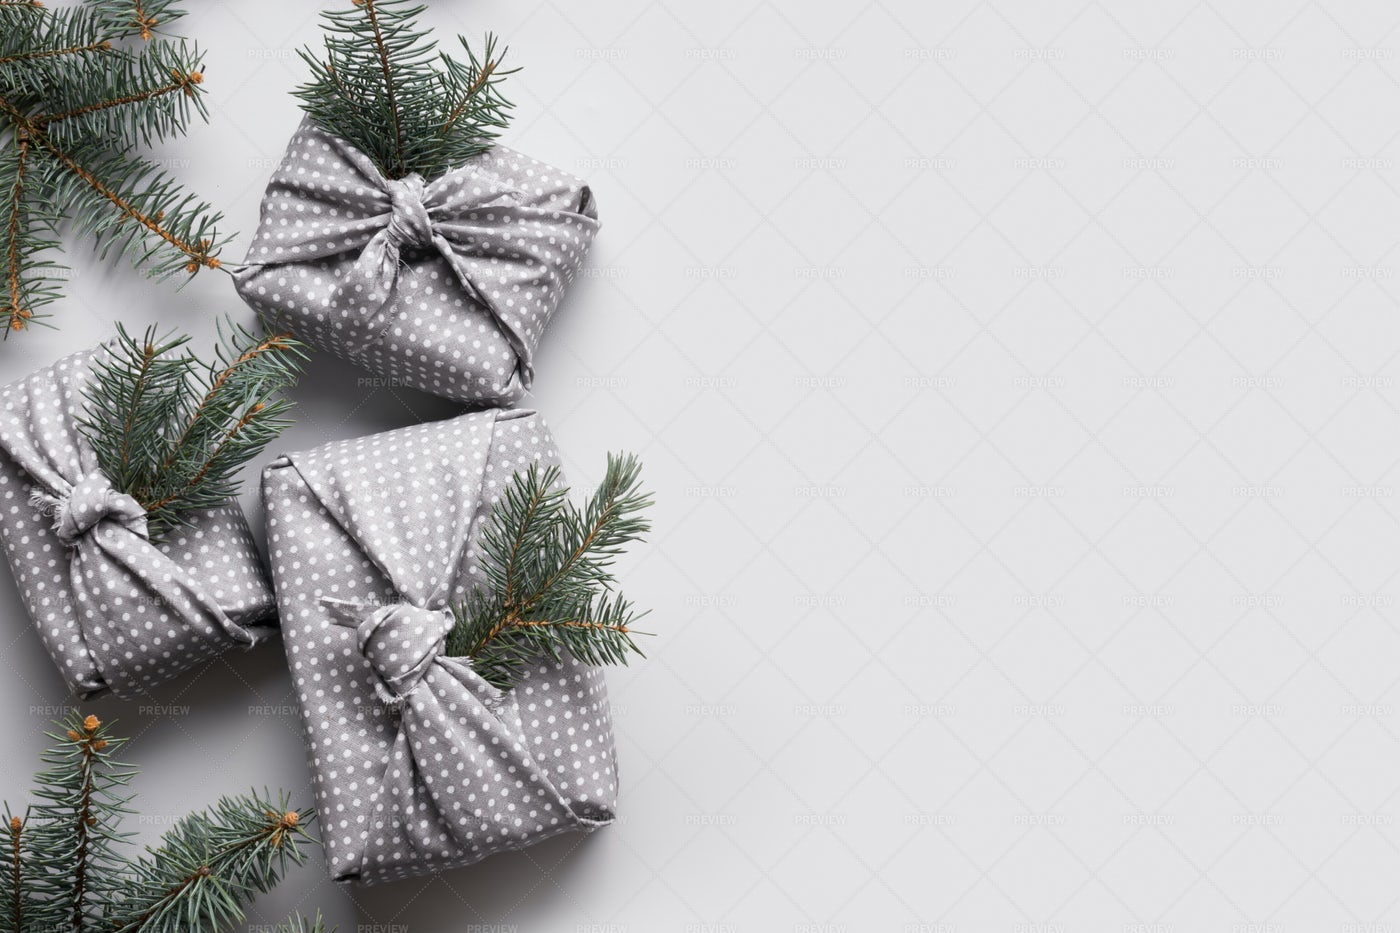 Sustainable Christmas Gifts: Stock Photos